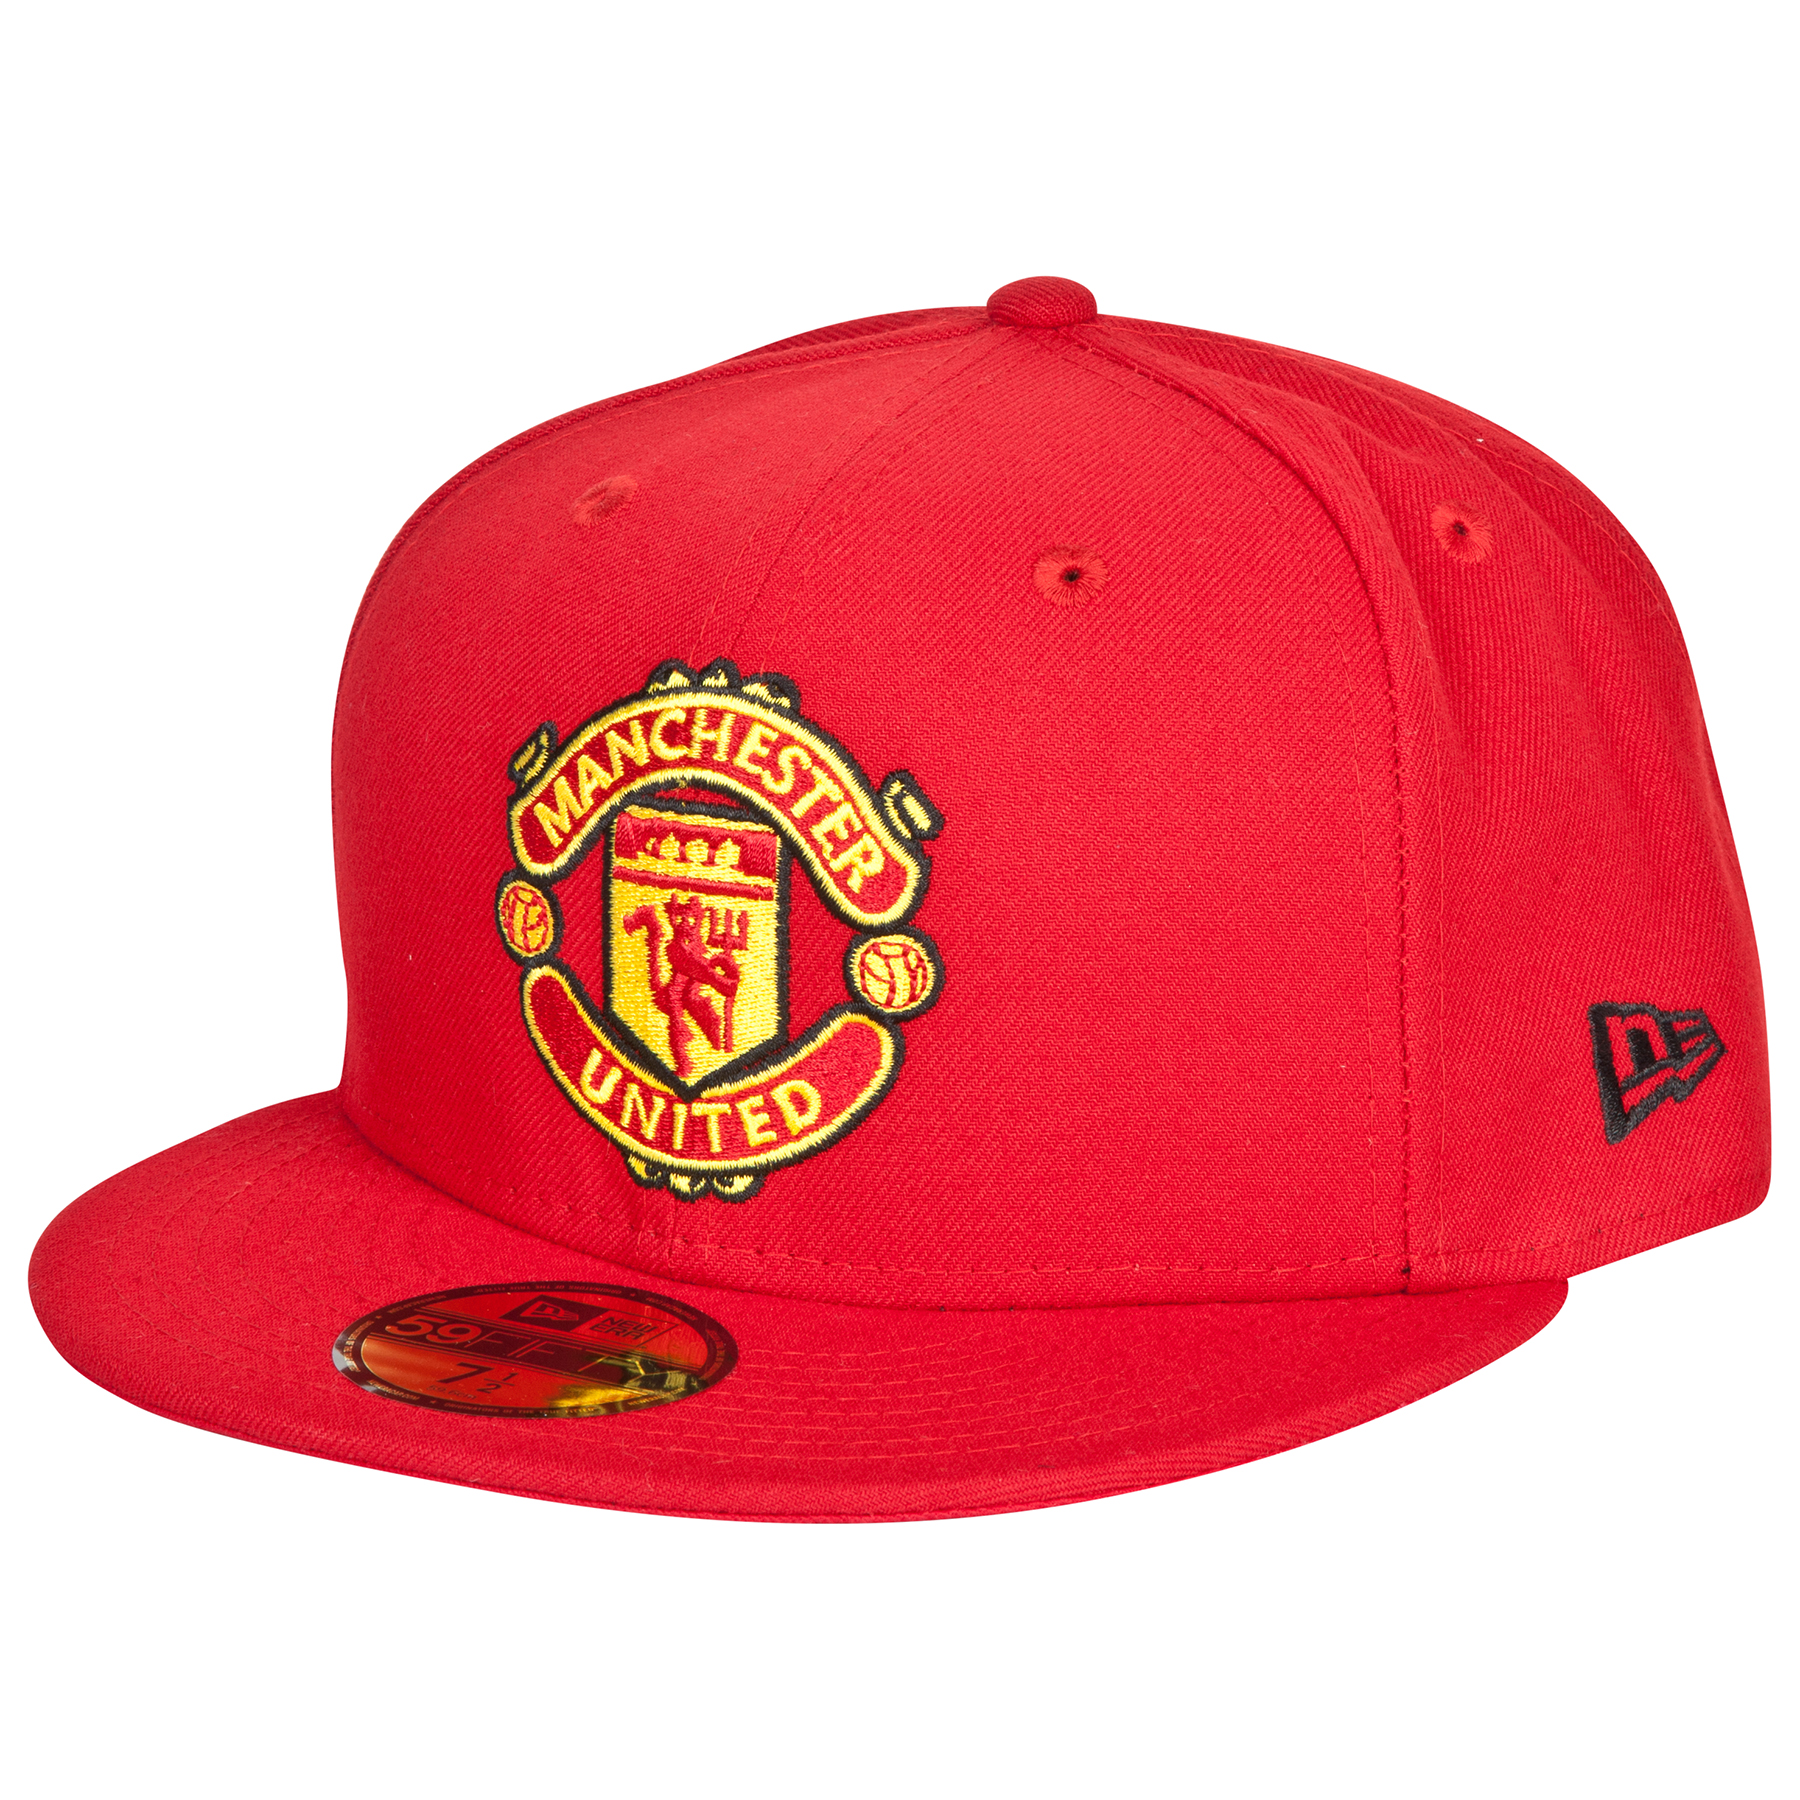 Manchester United New Era 59FIFTY Fitted Cap - Red - Adult